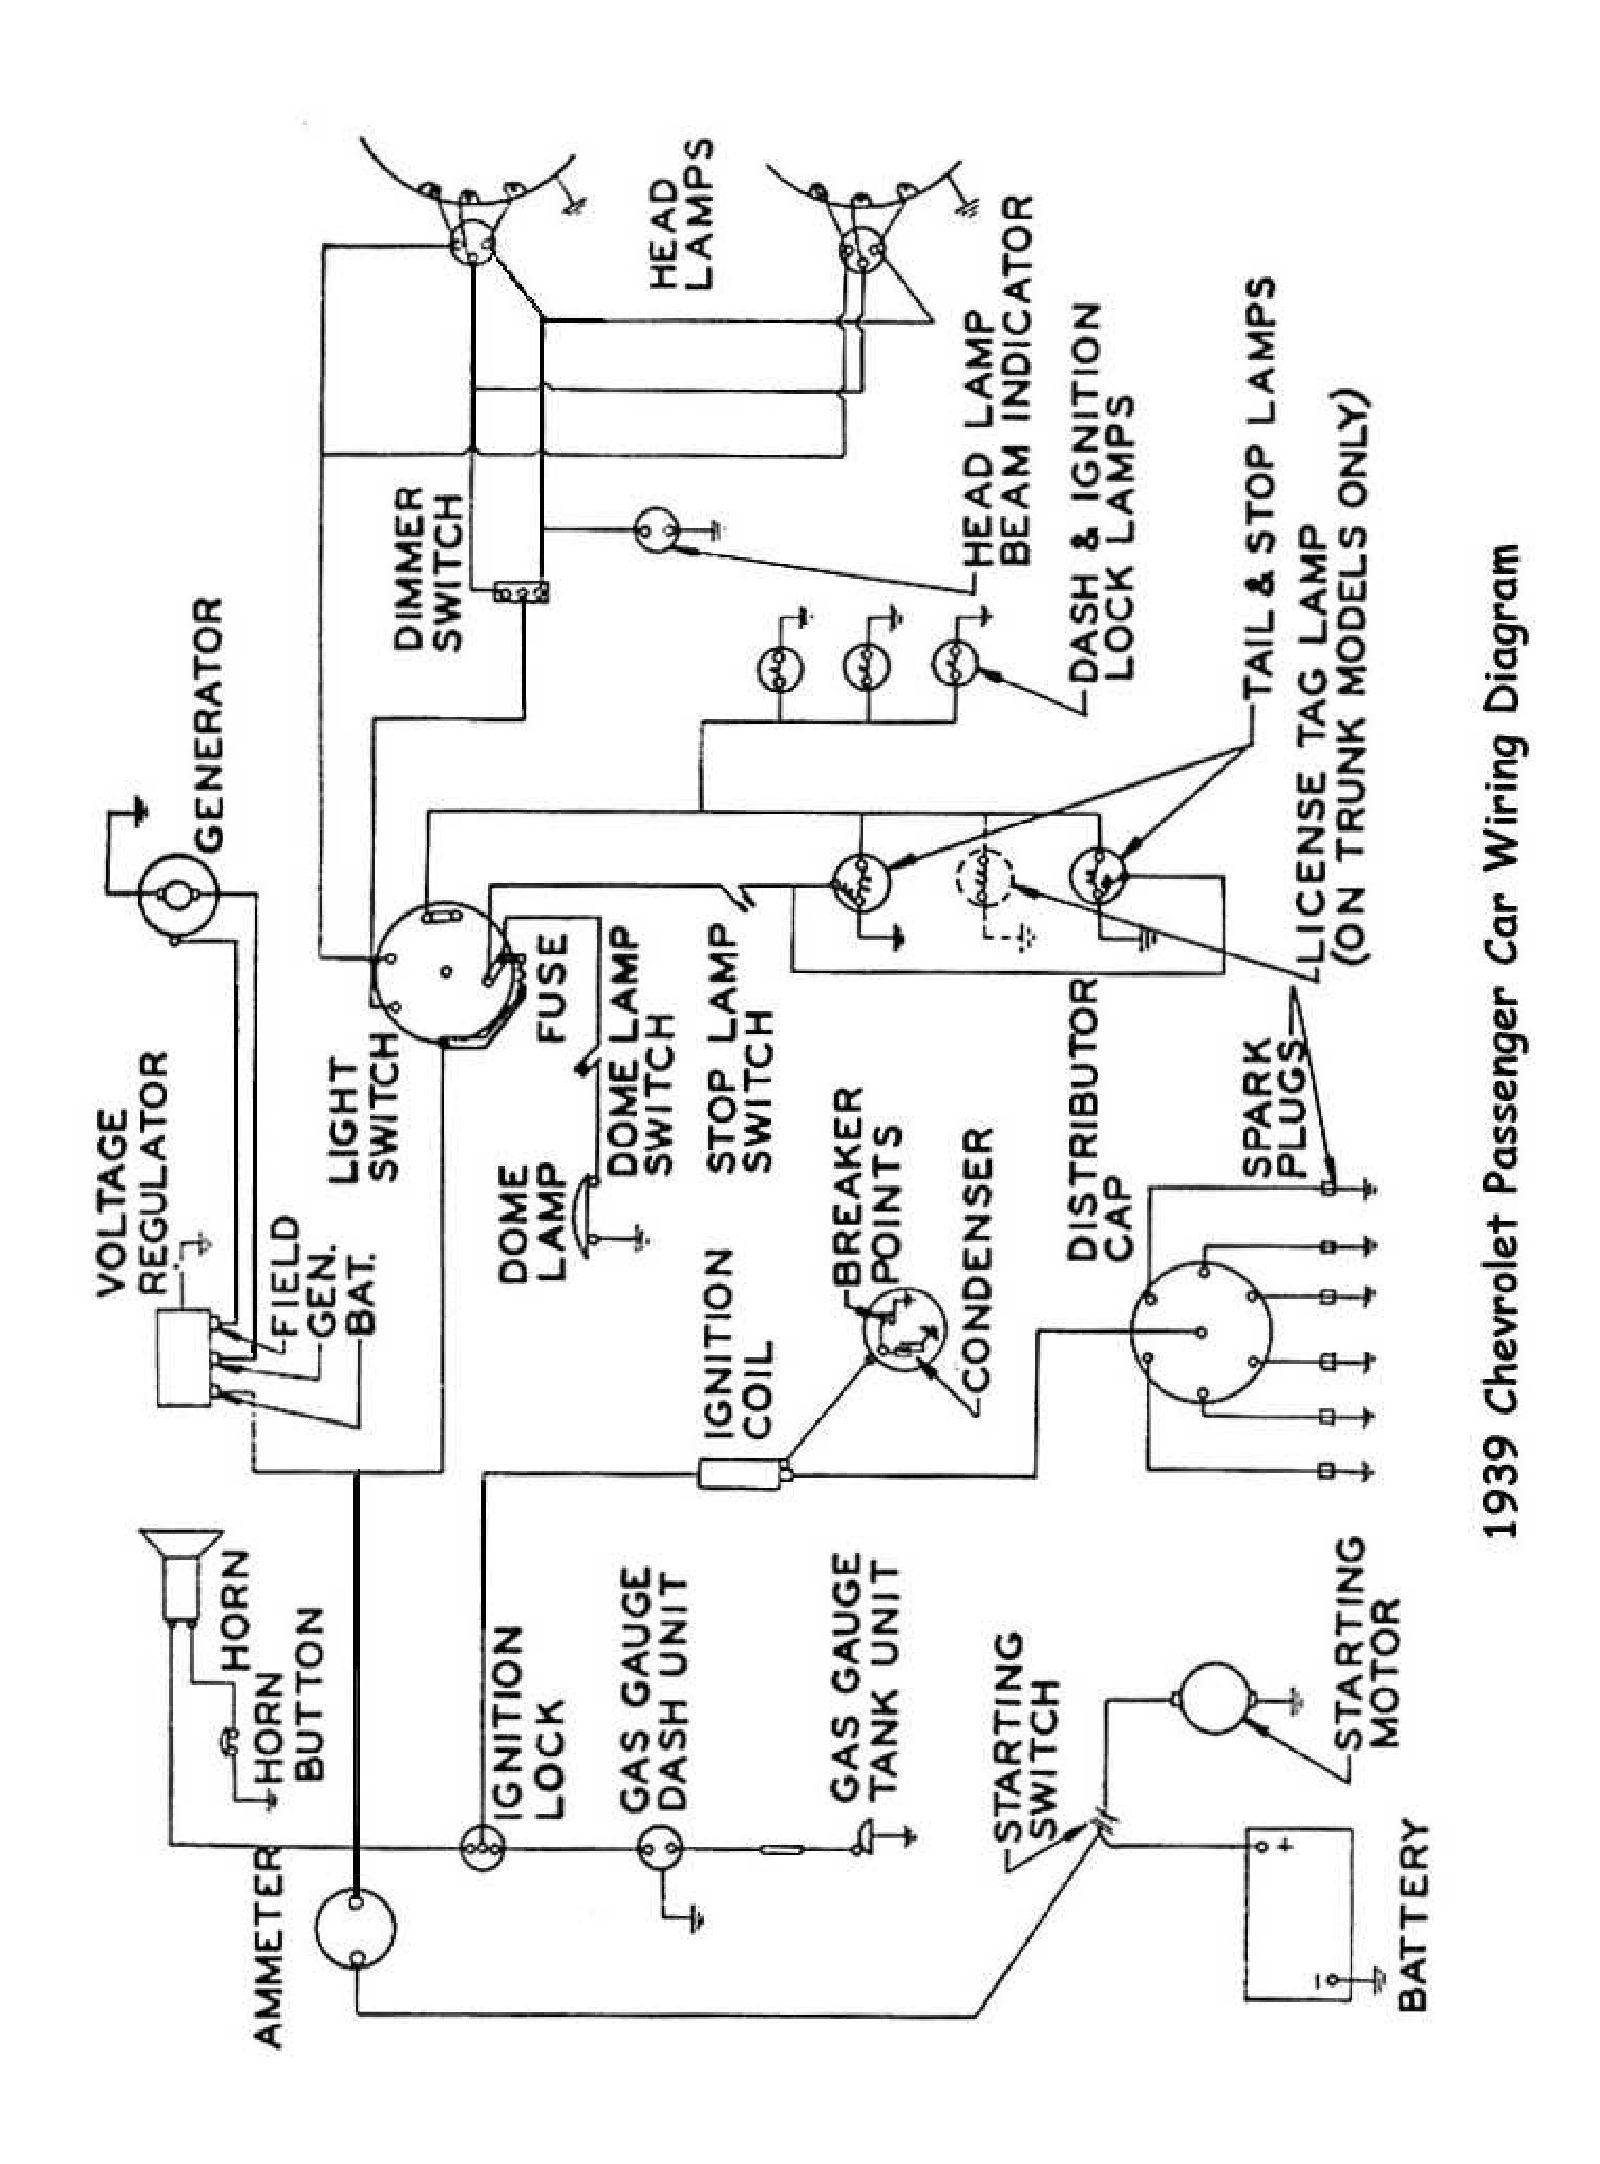 Wiring 20 Amp Kitchen Outlet Free Download Wiring Diagrams Pictures